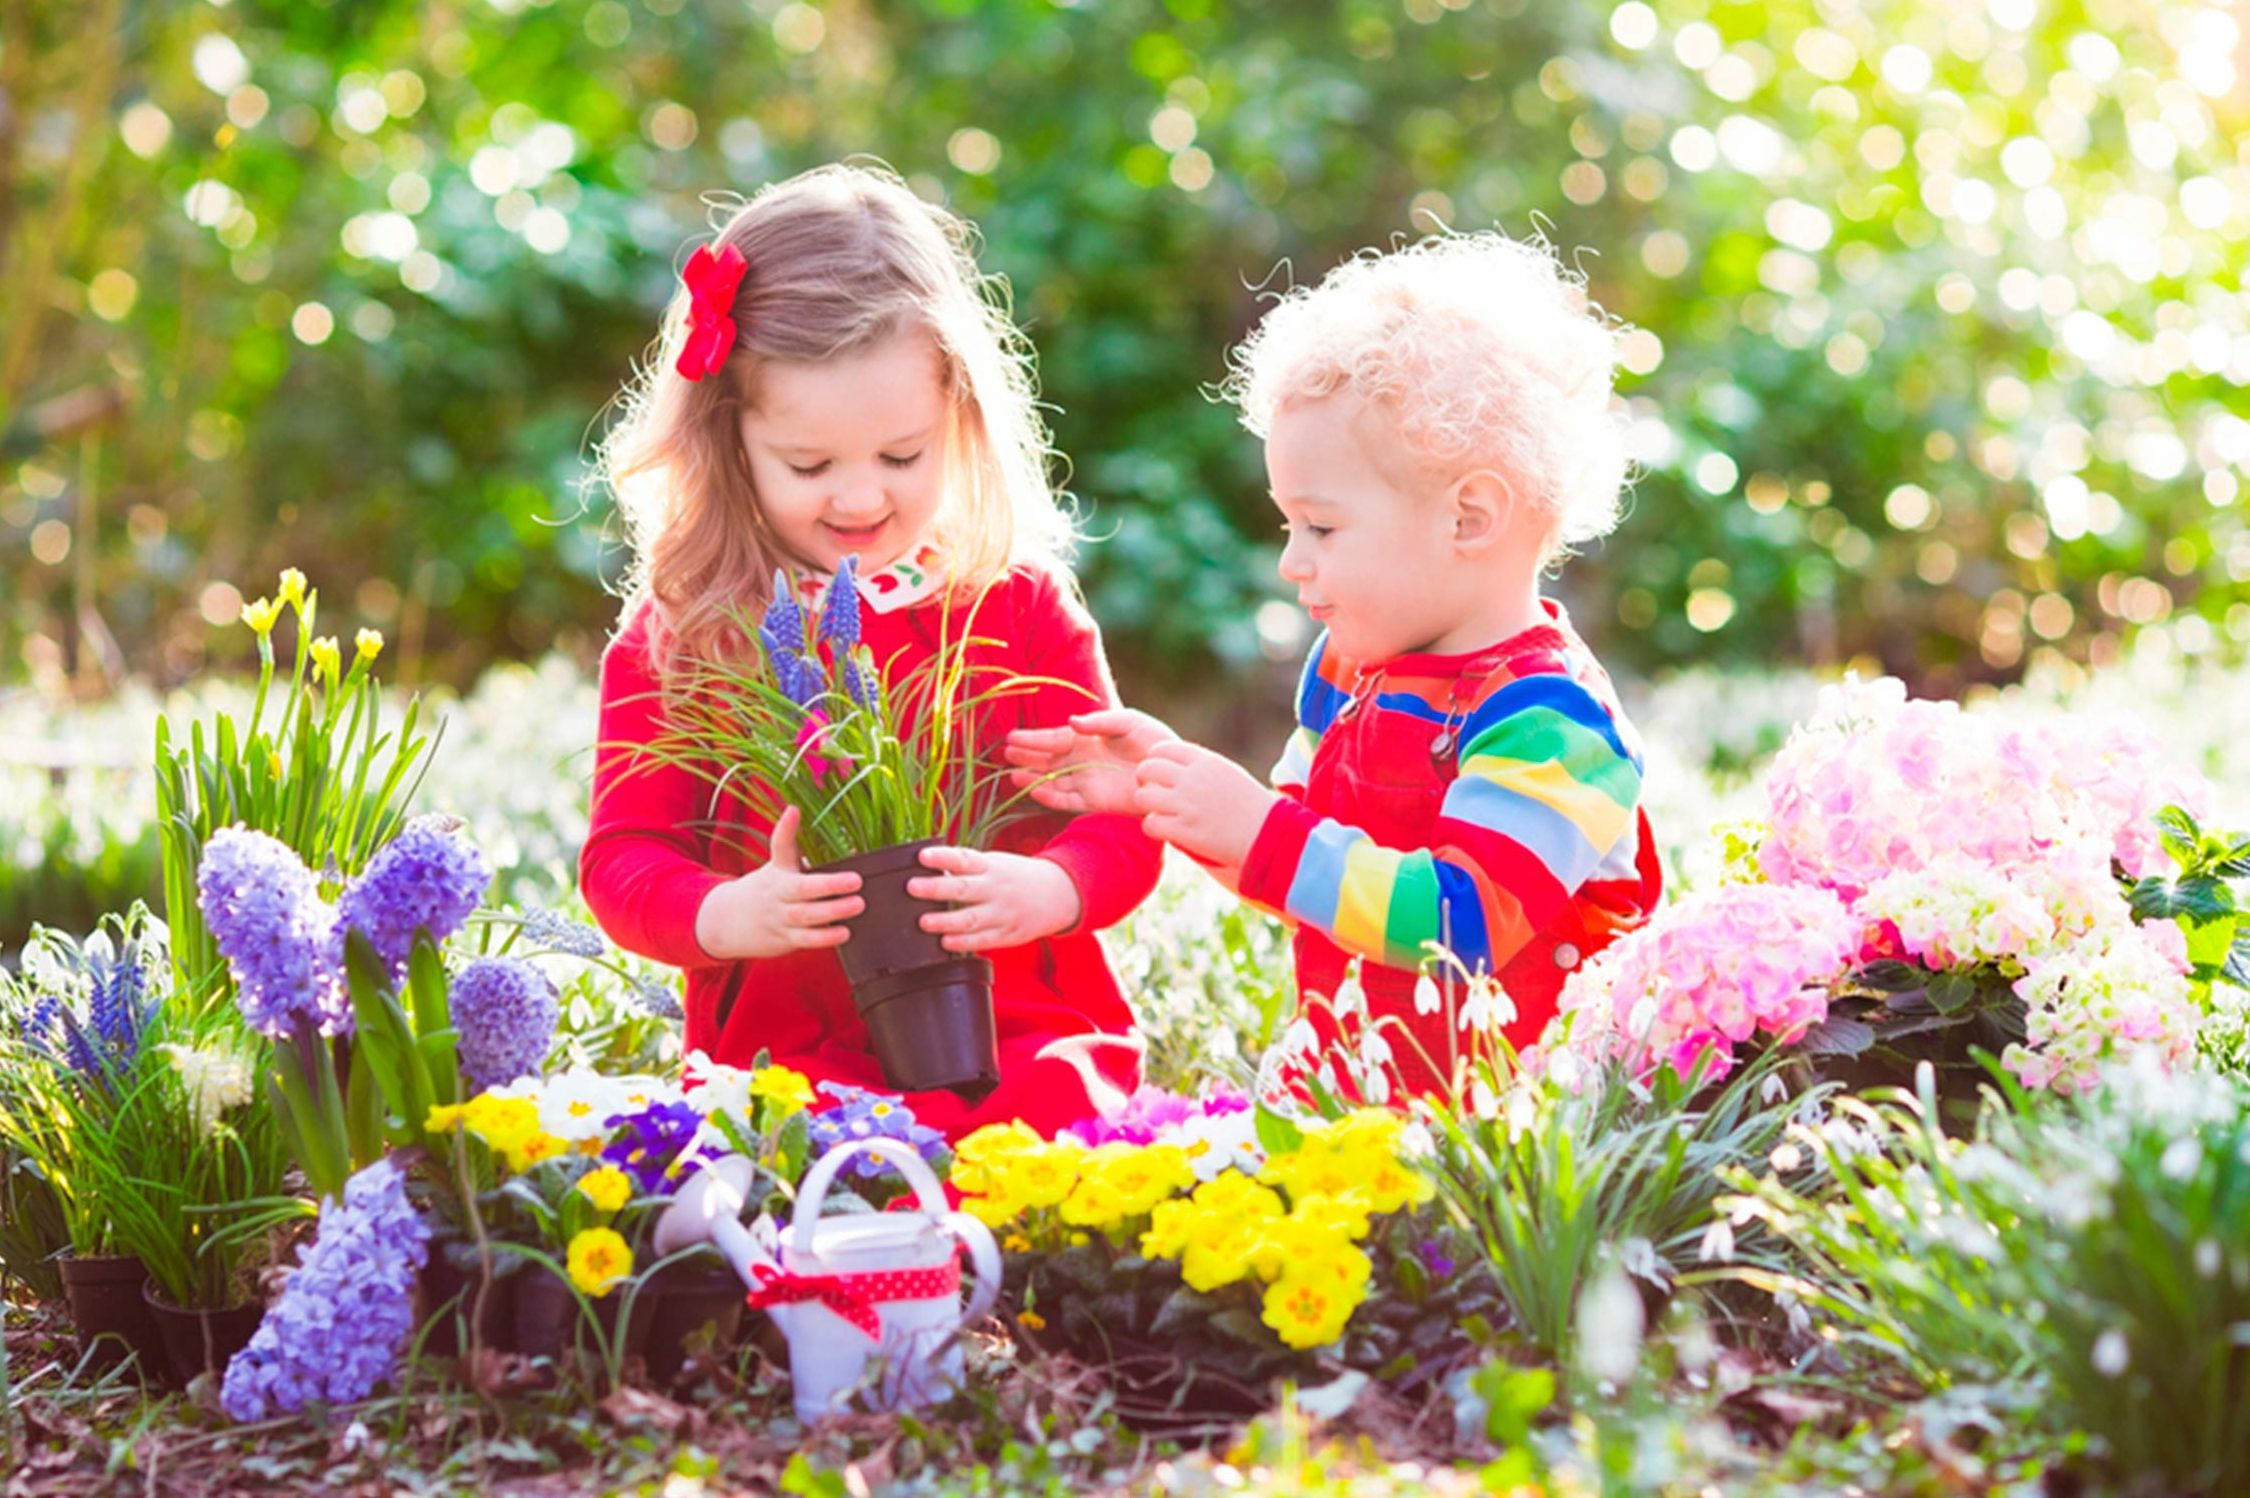 Fun-Ways-to-Celebrate-Earth-Day-with-Kids